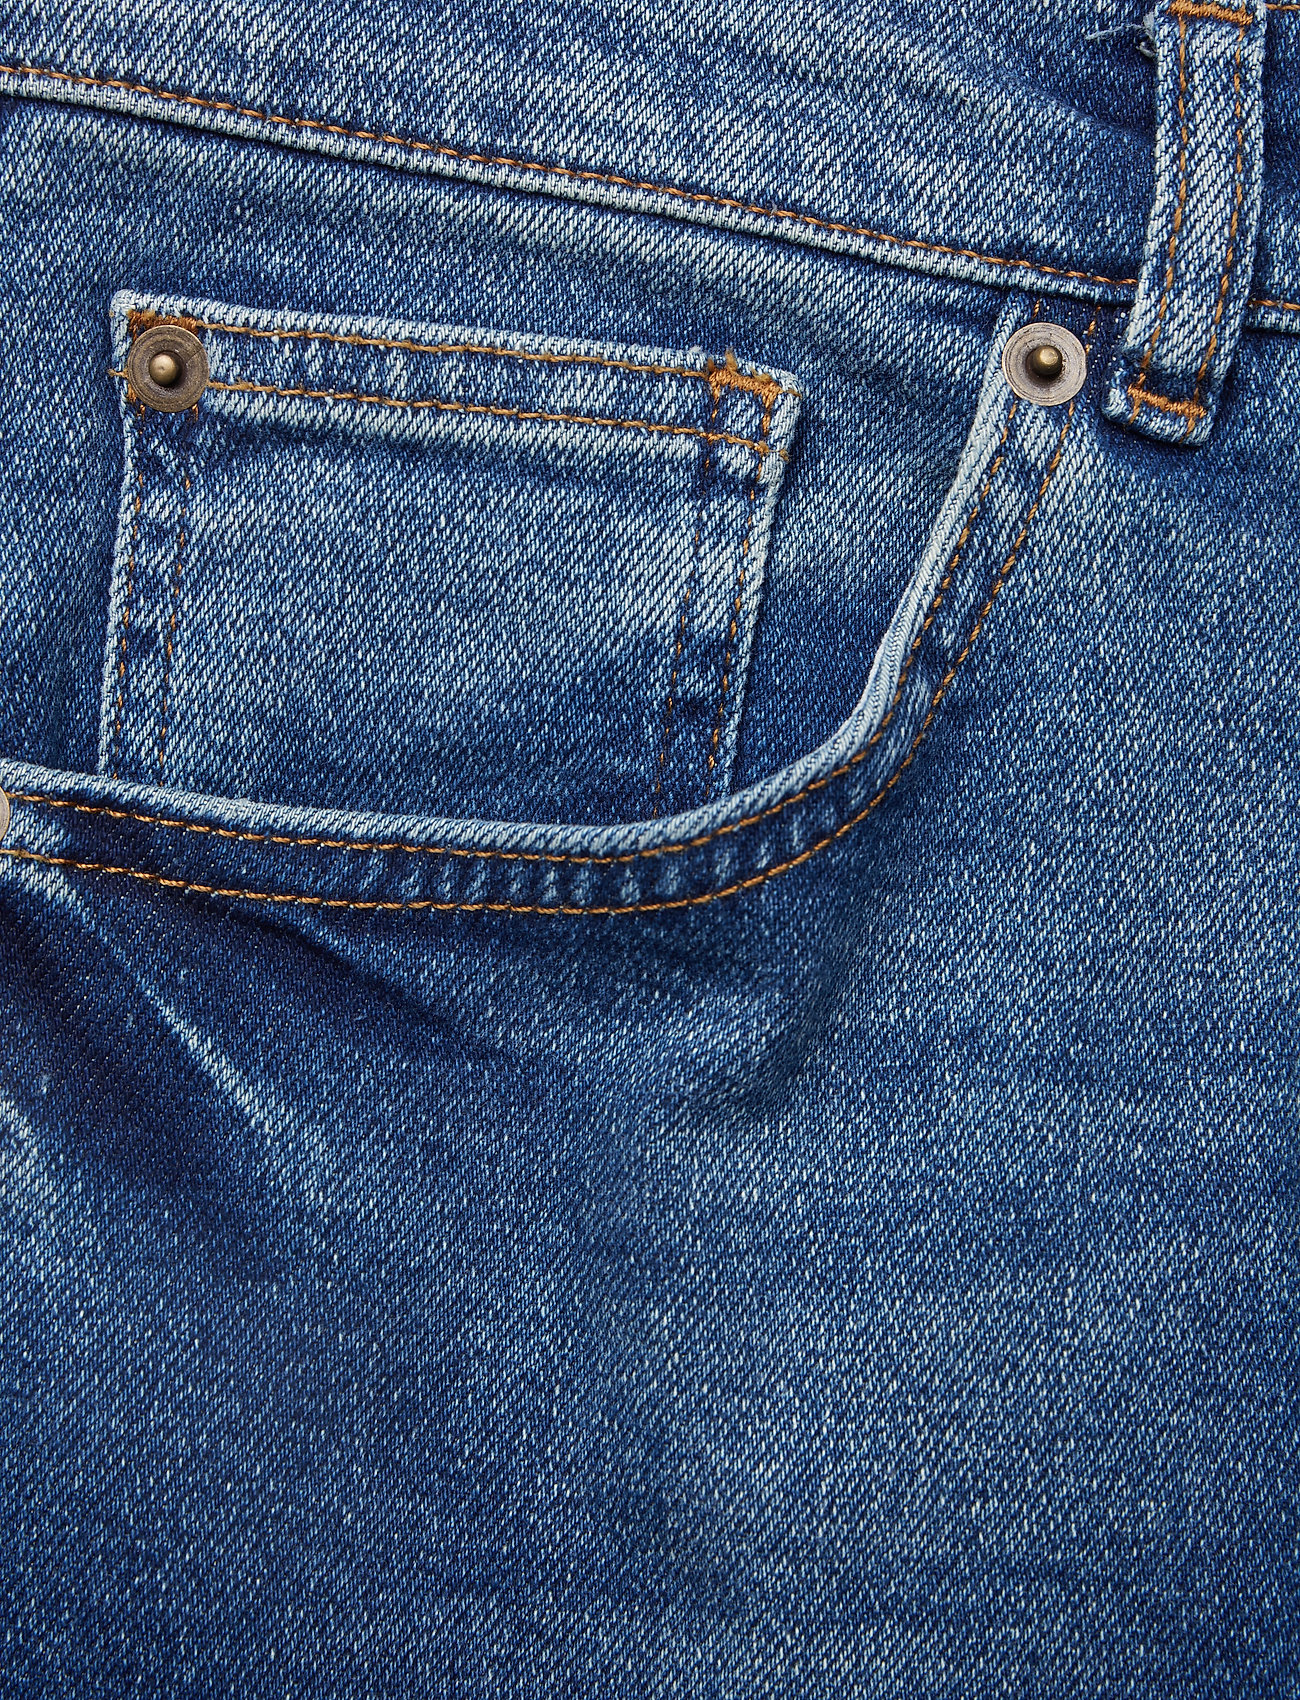 JeansLes Deux JeansLes Jeansblue Amis Amis JeansLes Amis Jeansblue Jeansblue Deux kiXOZPuT